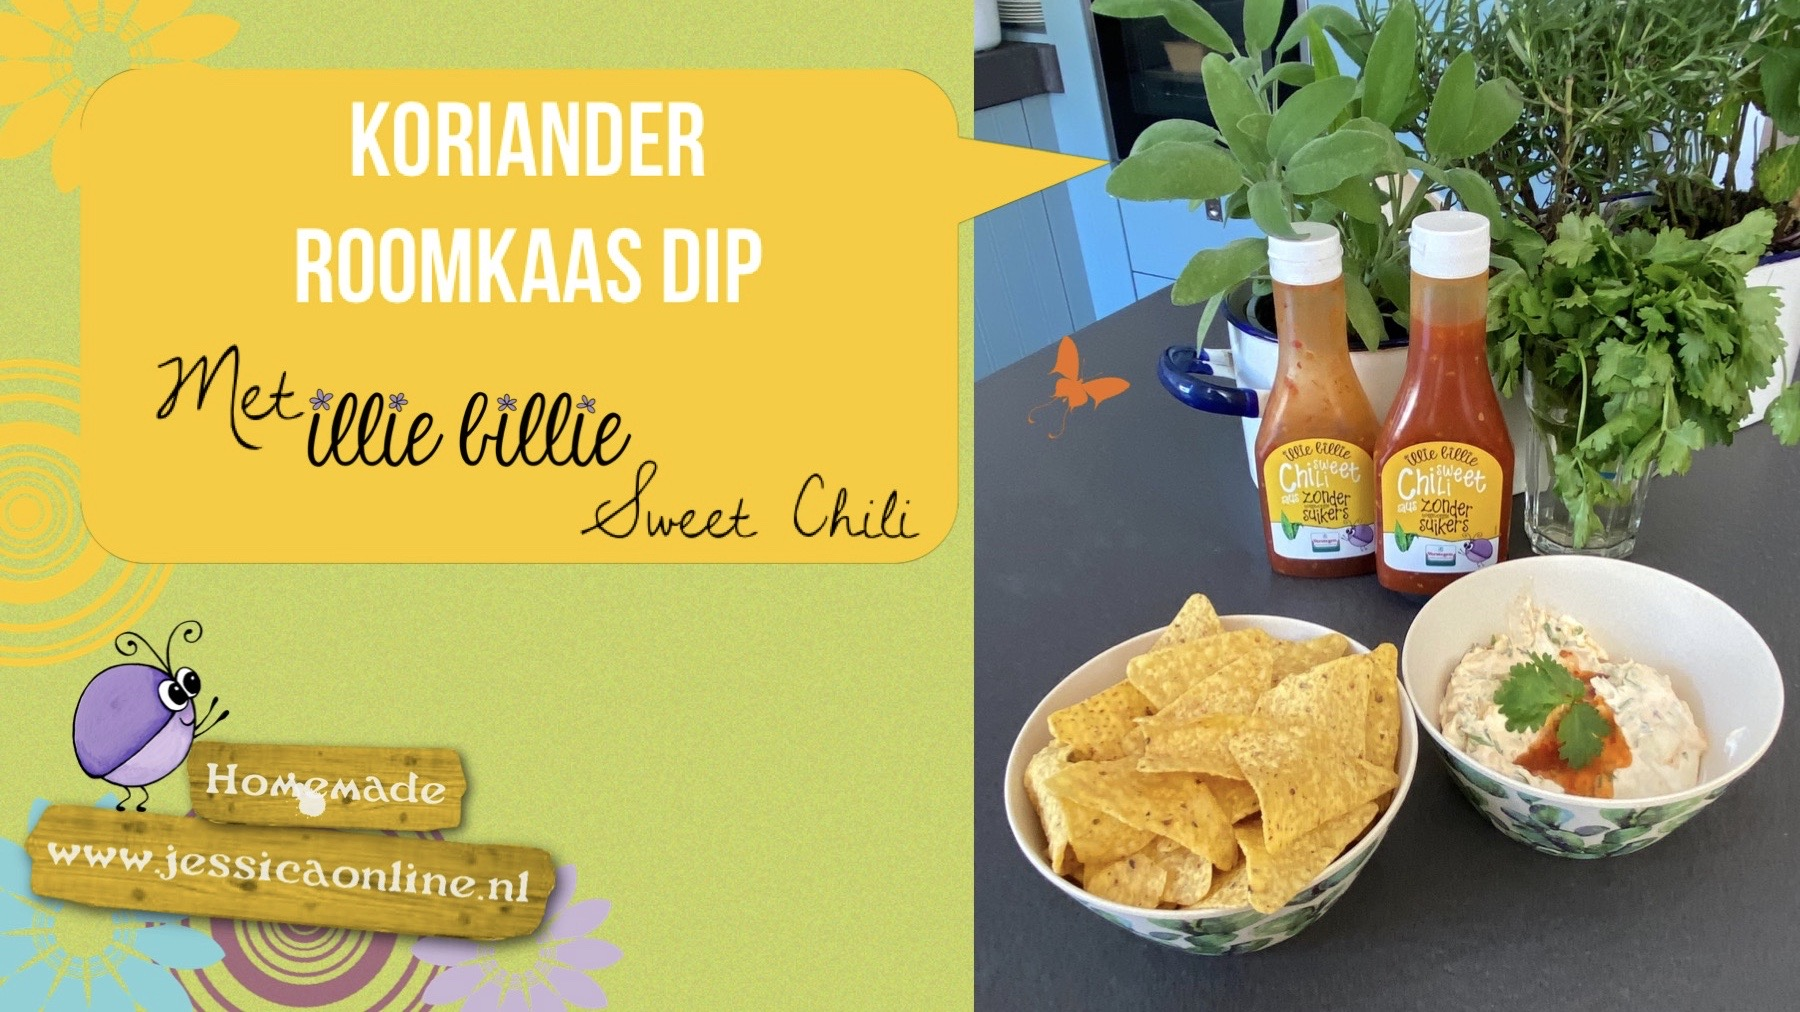 Koriander roomkaas dip met illie billie Sweet Chili